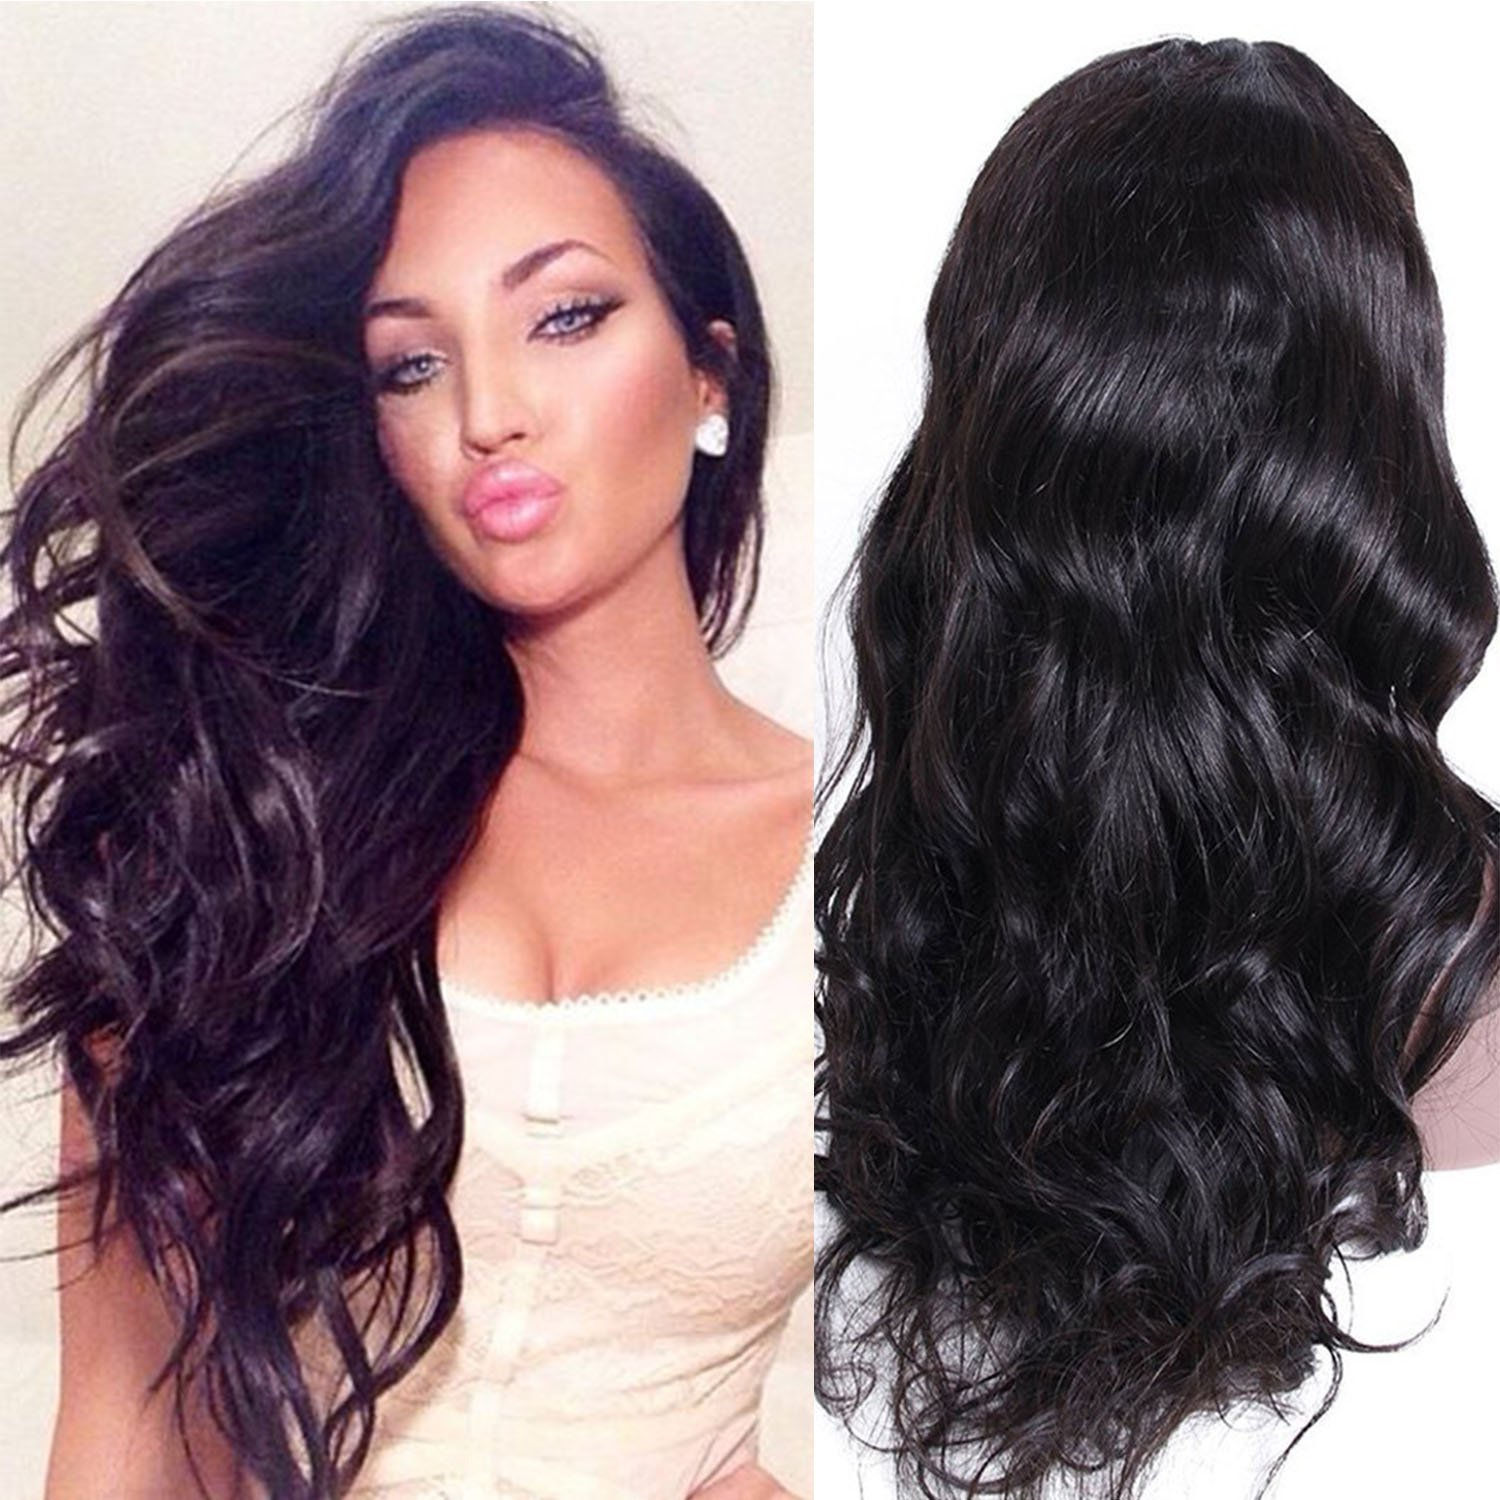 Premier Wig Body Wave Silk Opening large release sale Top Wigs Lace Now free shipping Front Glueless Brazilia